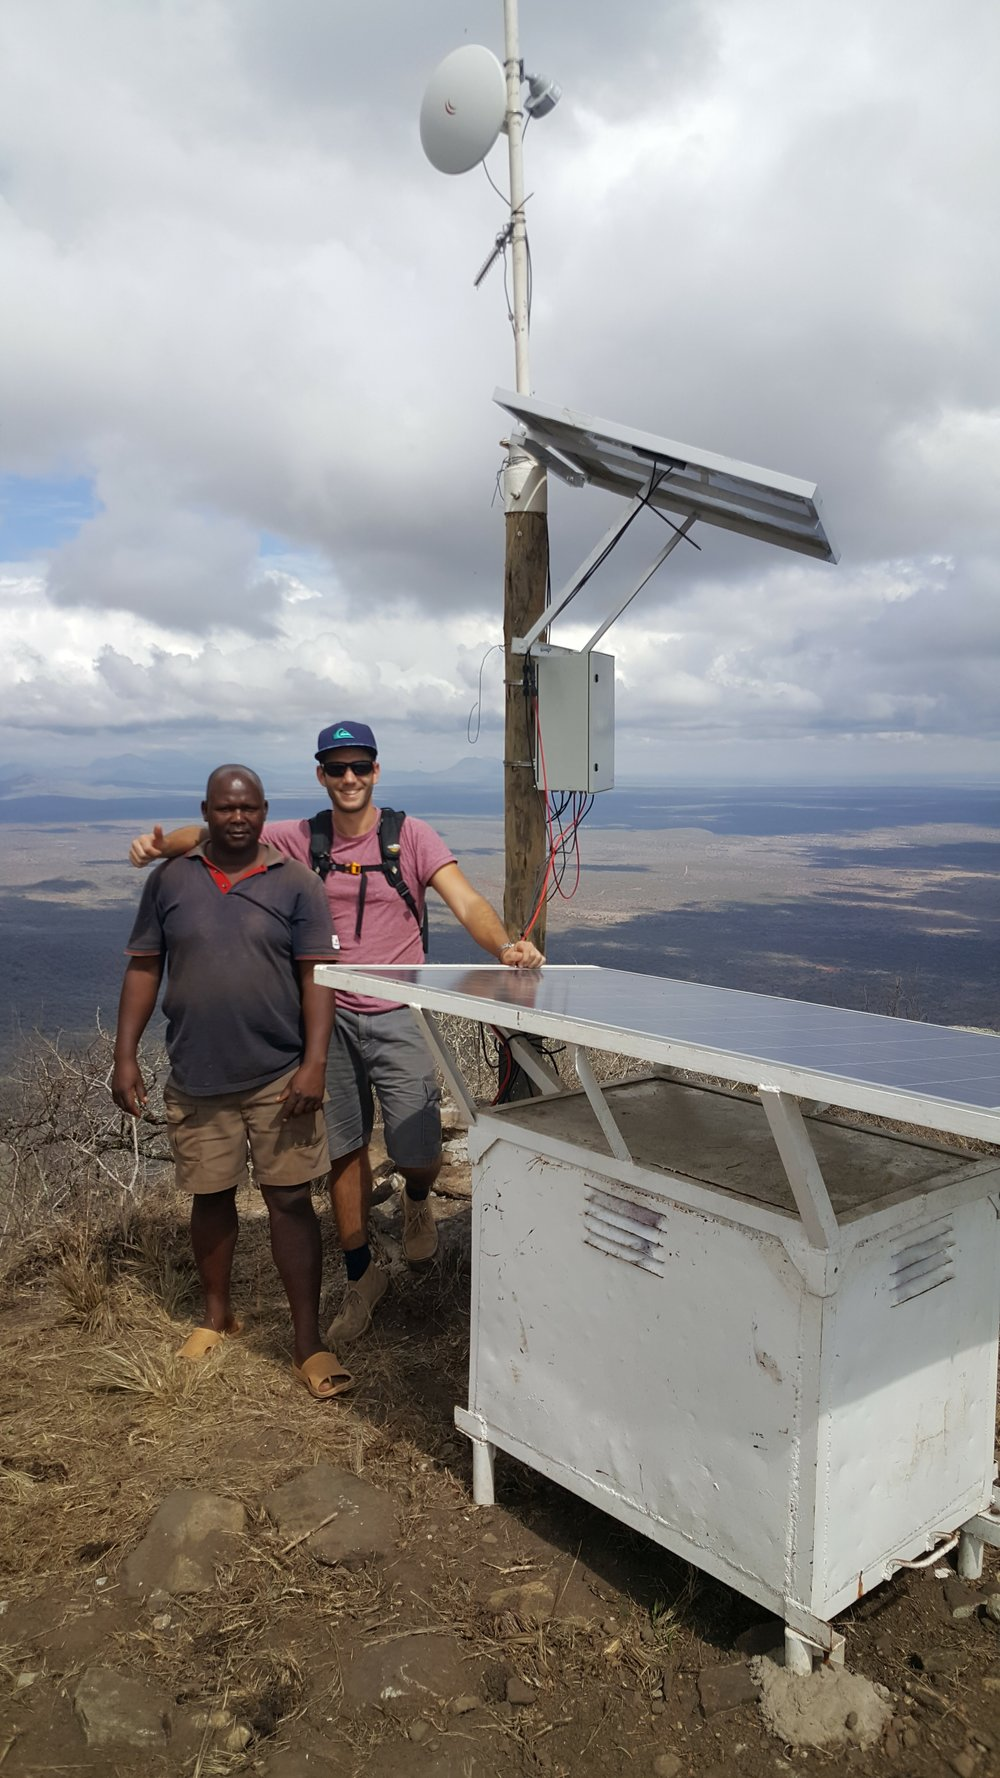 Our new friend Tim (Initiator @ The Internet Of Life) installing a LoRa network in Tanzania